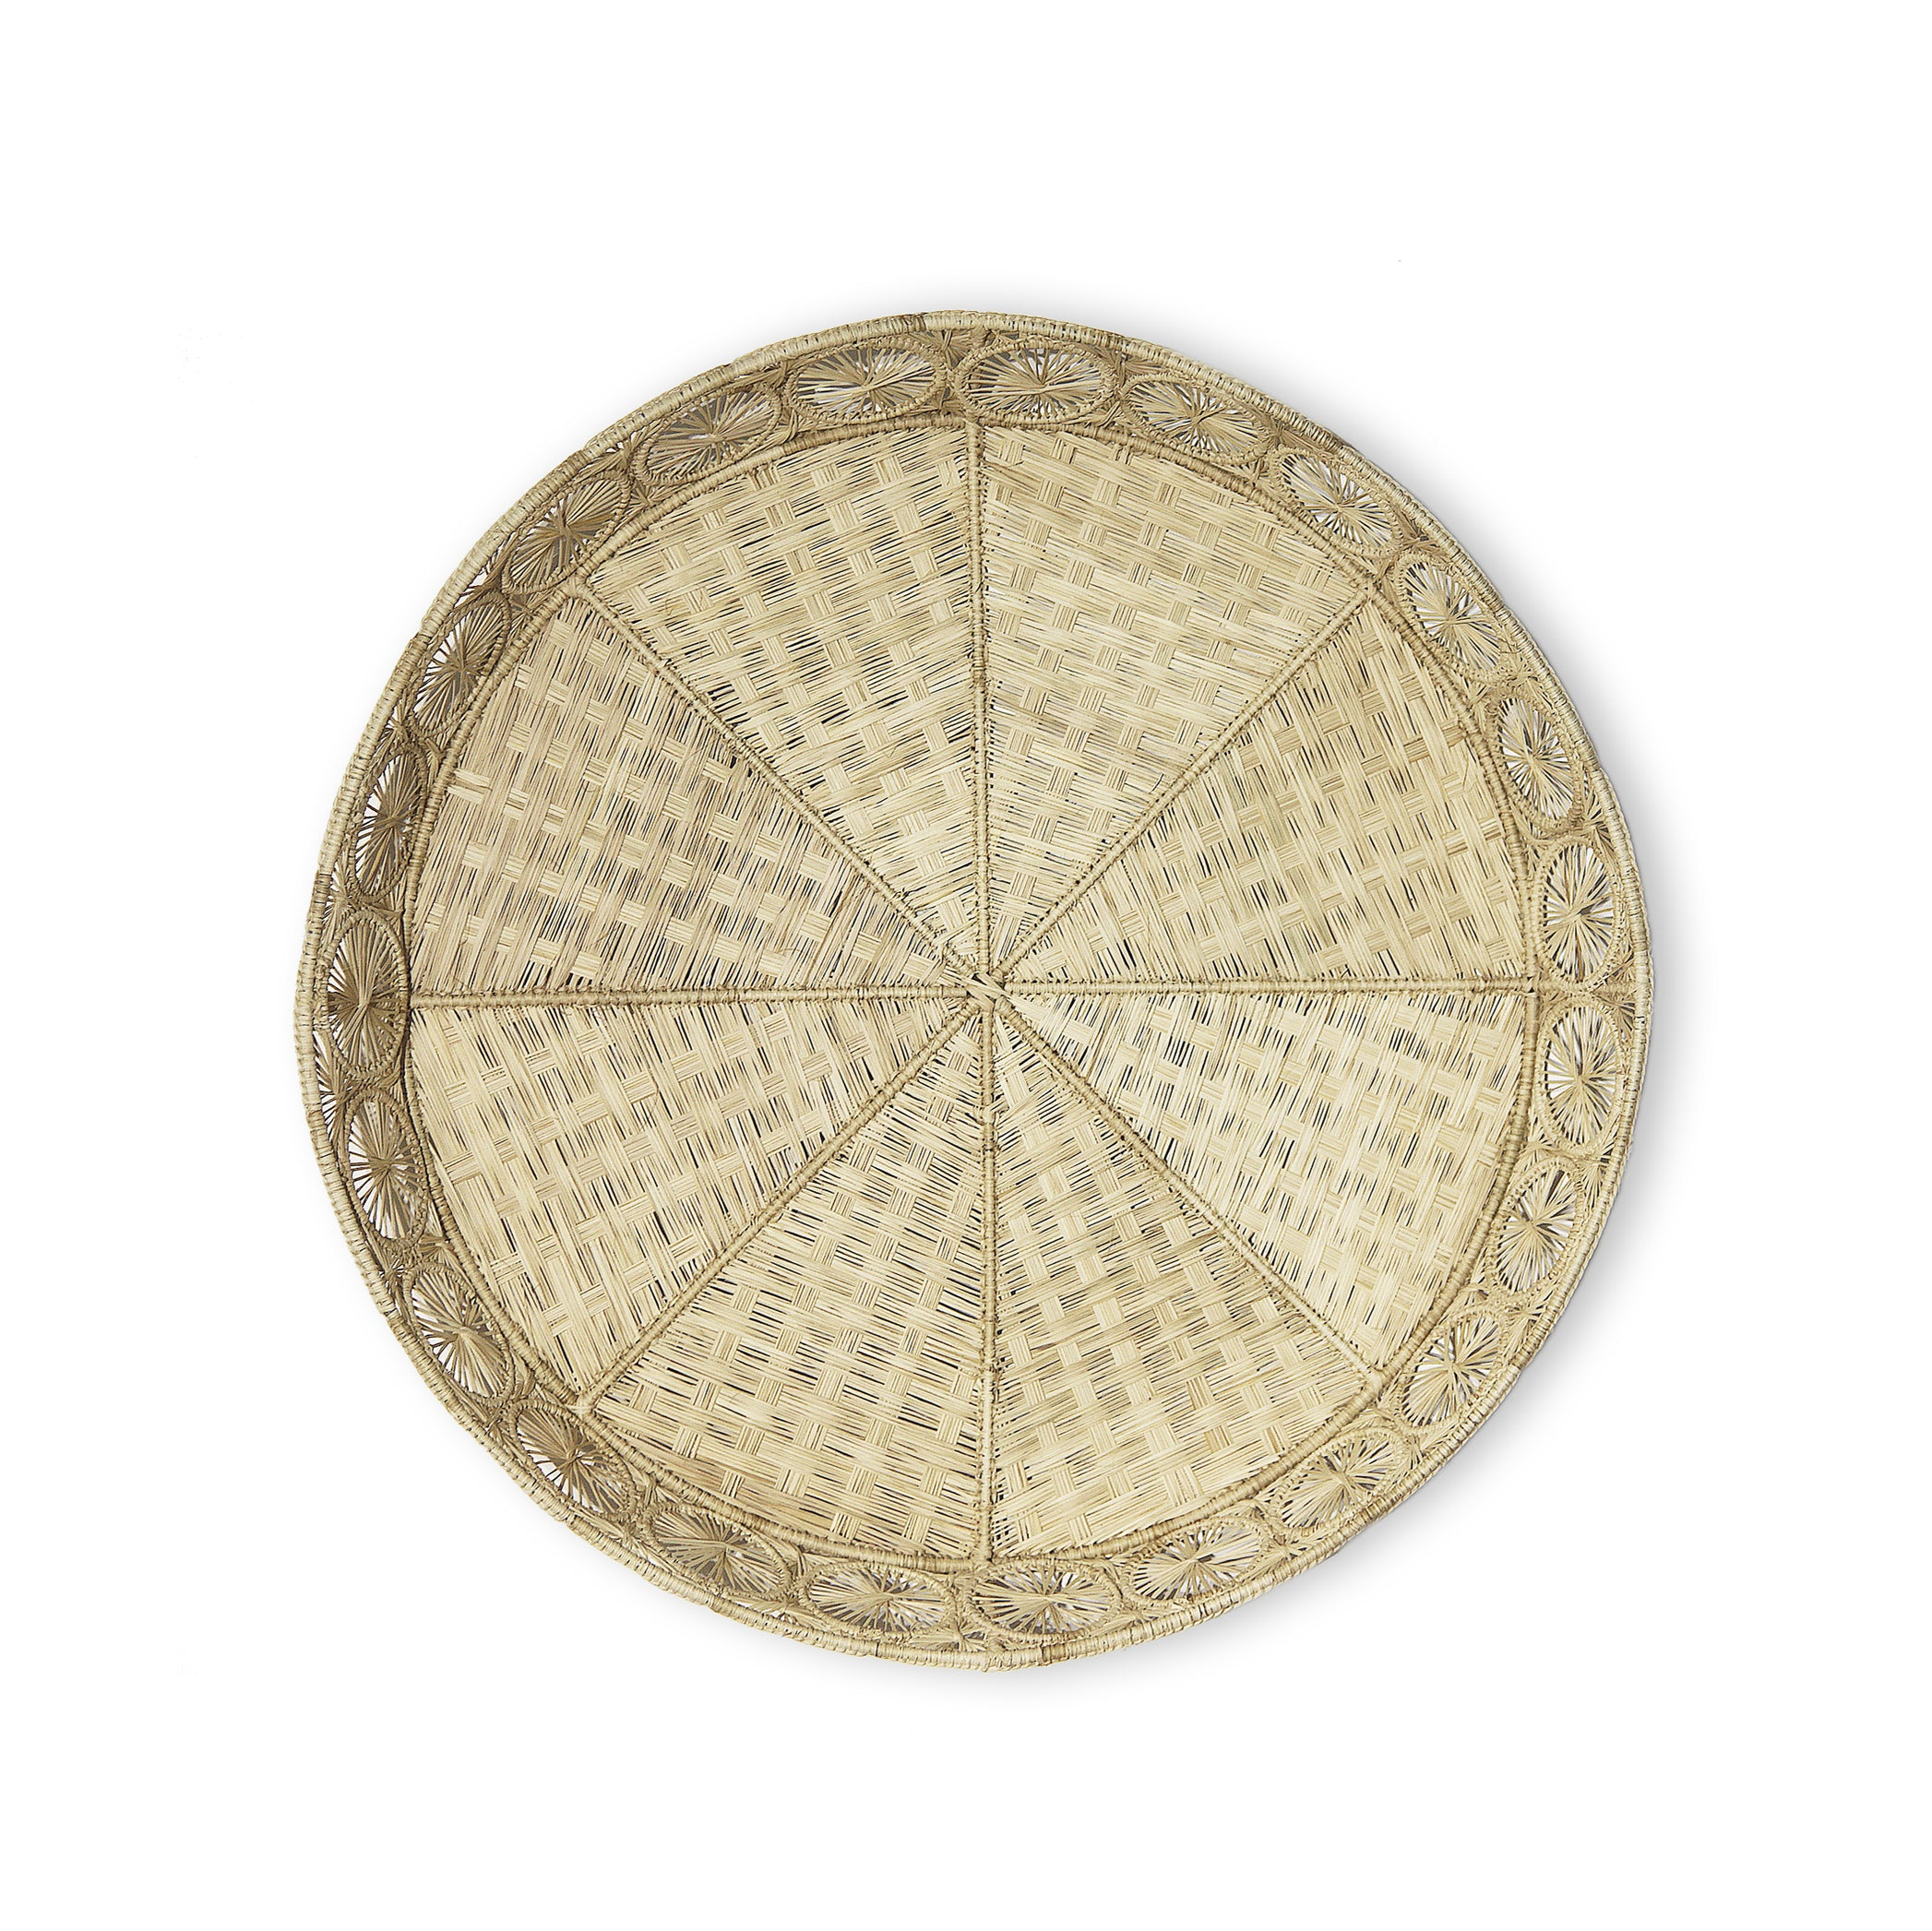 Handwoven Round Tray in Natural, 50cm